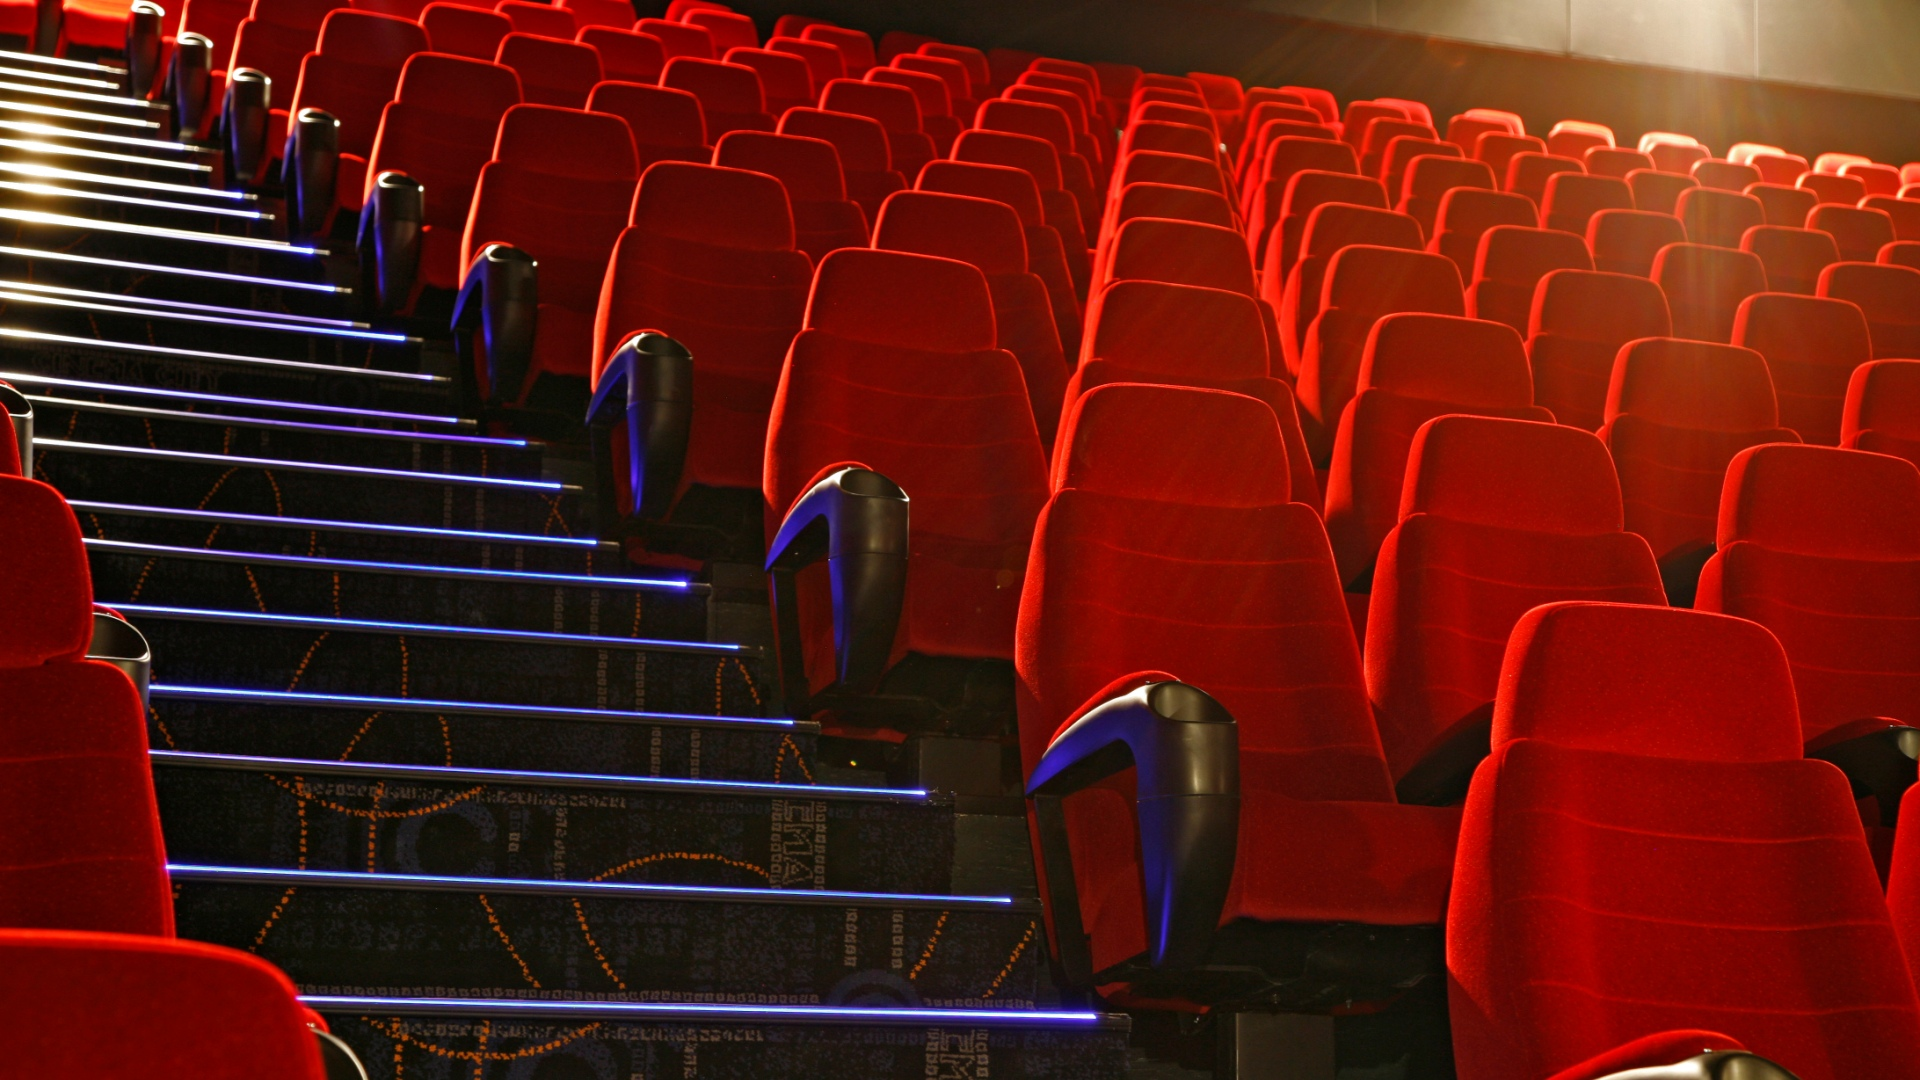 Enter a new galaxy of entertainment just steps from Casino Fandango. Galaxy Theatres features a wide selection of the latest movies on 10 HD screens. Enjoy stadium seating, DLP digital projectors, Real-D 3-D, digital audio, and D-Box motion activated seats.